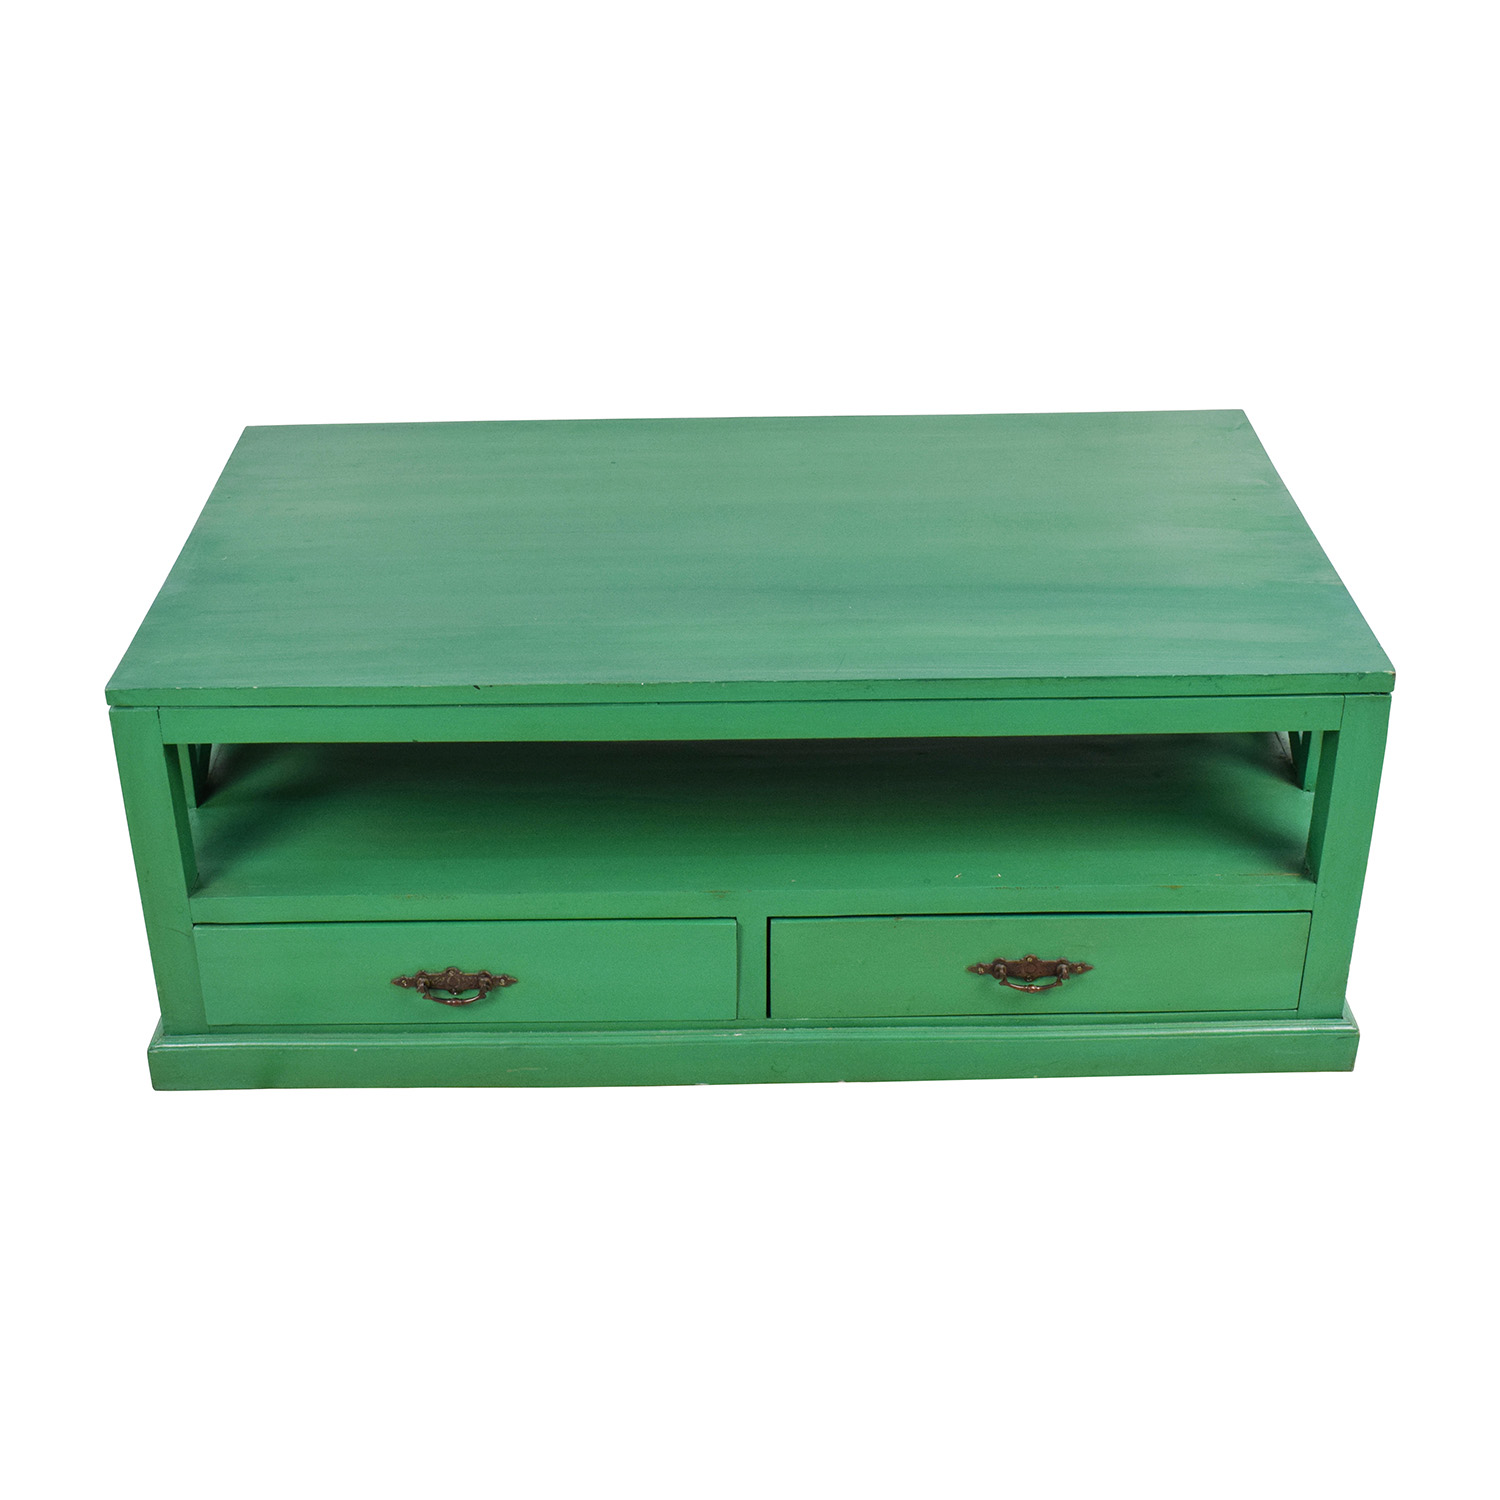 shop Nadeau Nadeau Handmade Green Coffee Table online